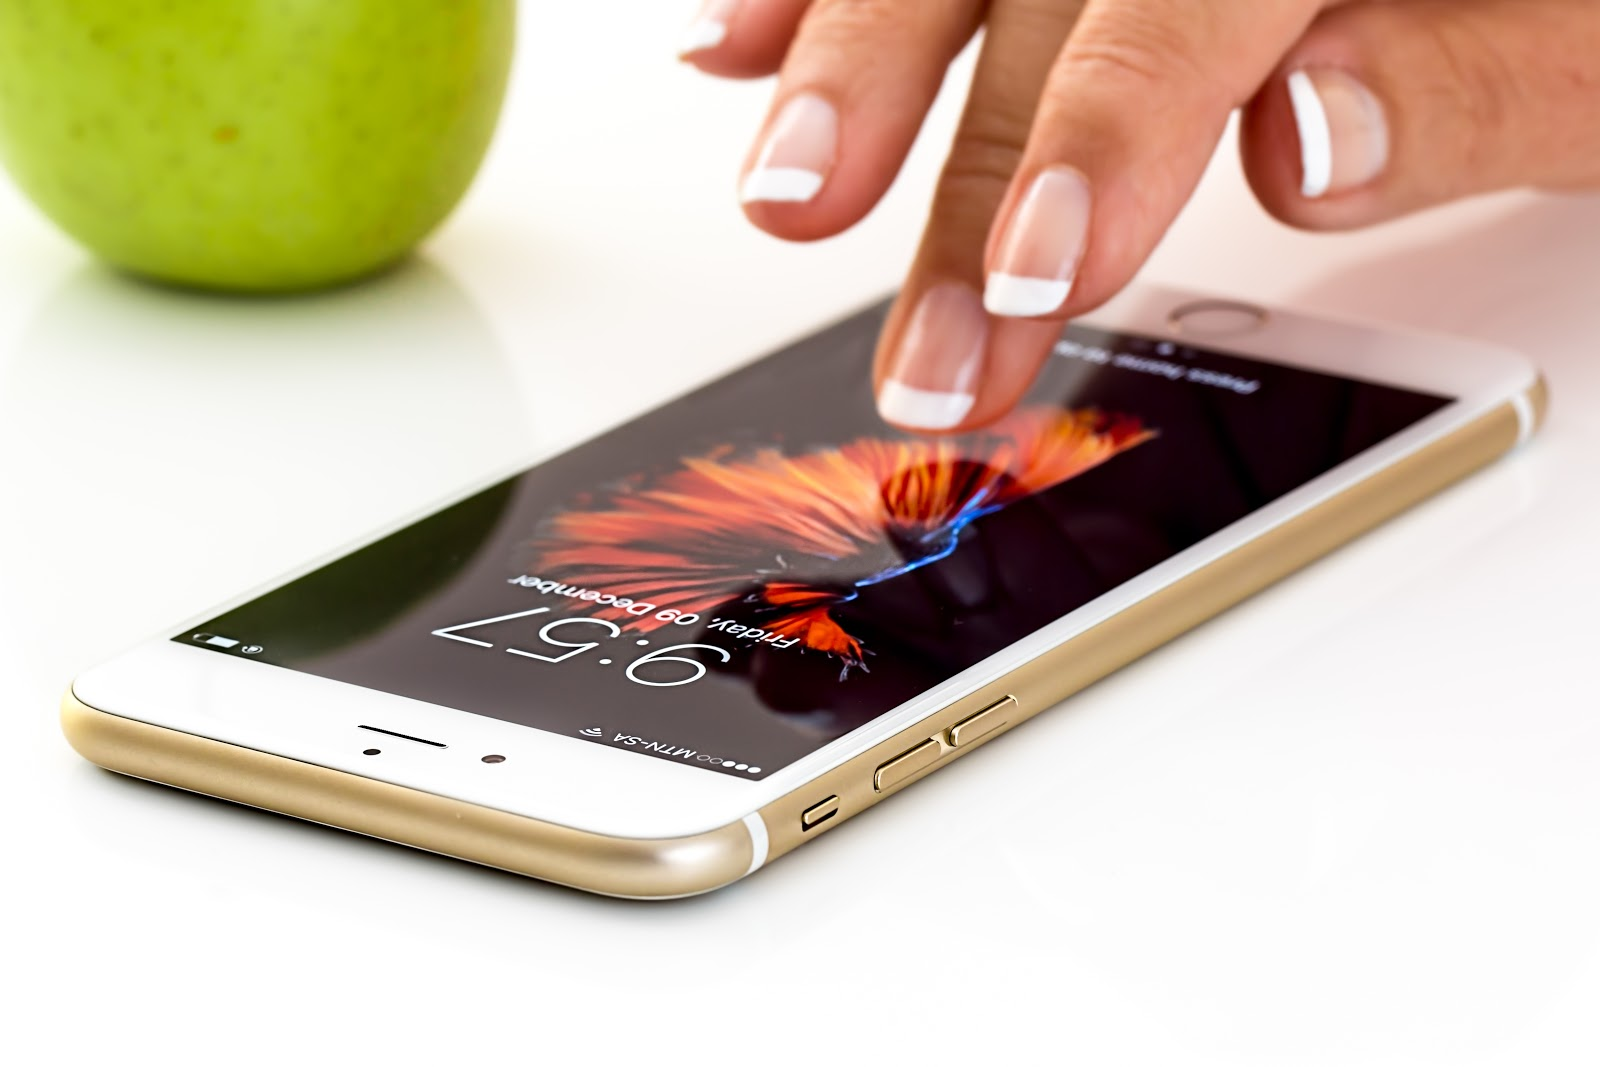 A middle finger hovers just above the screen of a white smartphone, with a green granny smith app in the top left hand corner of the scene